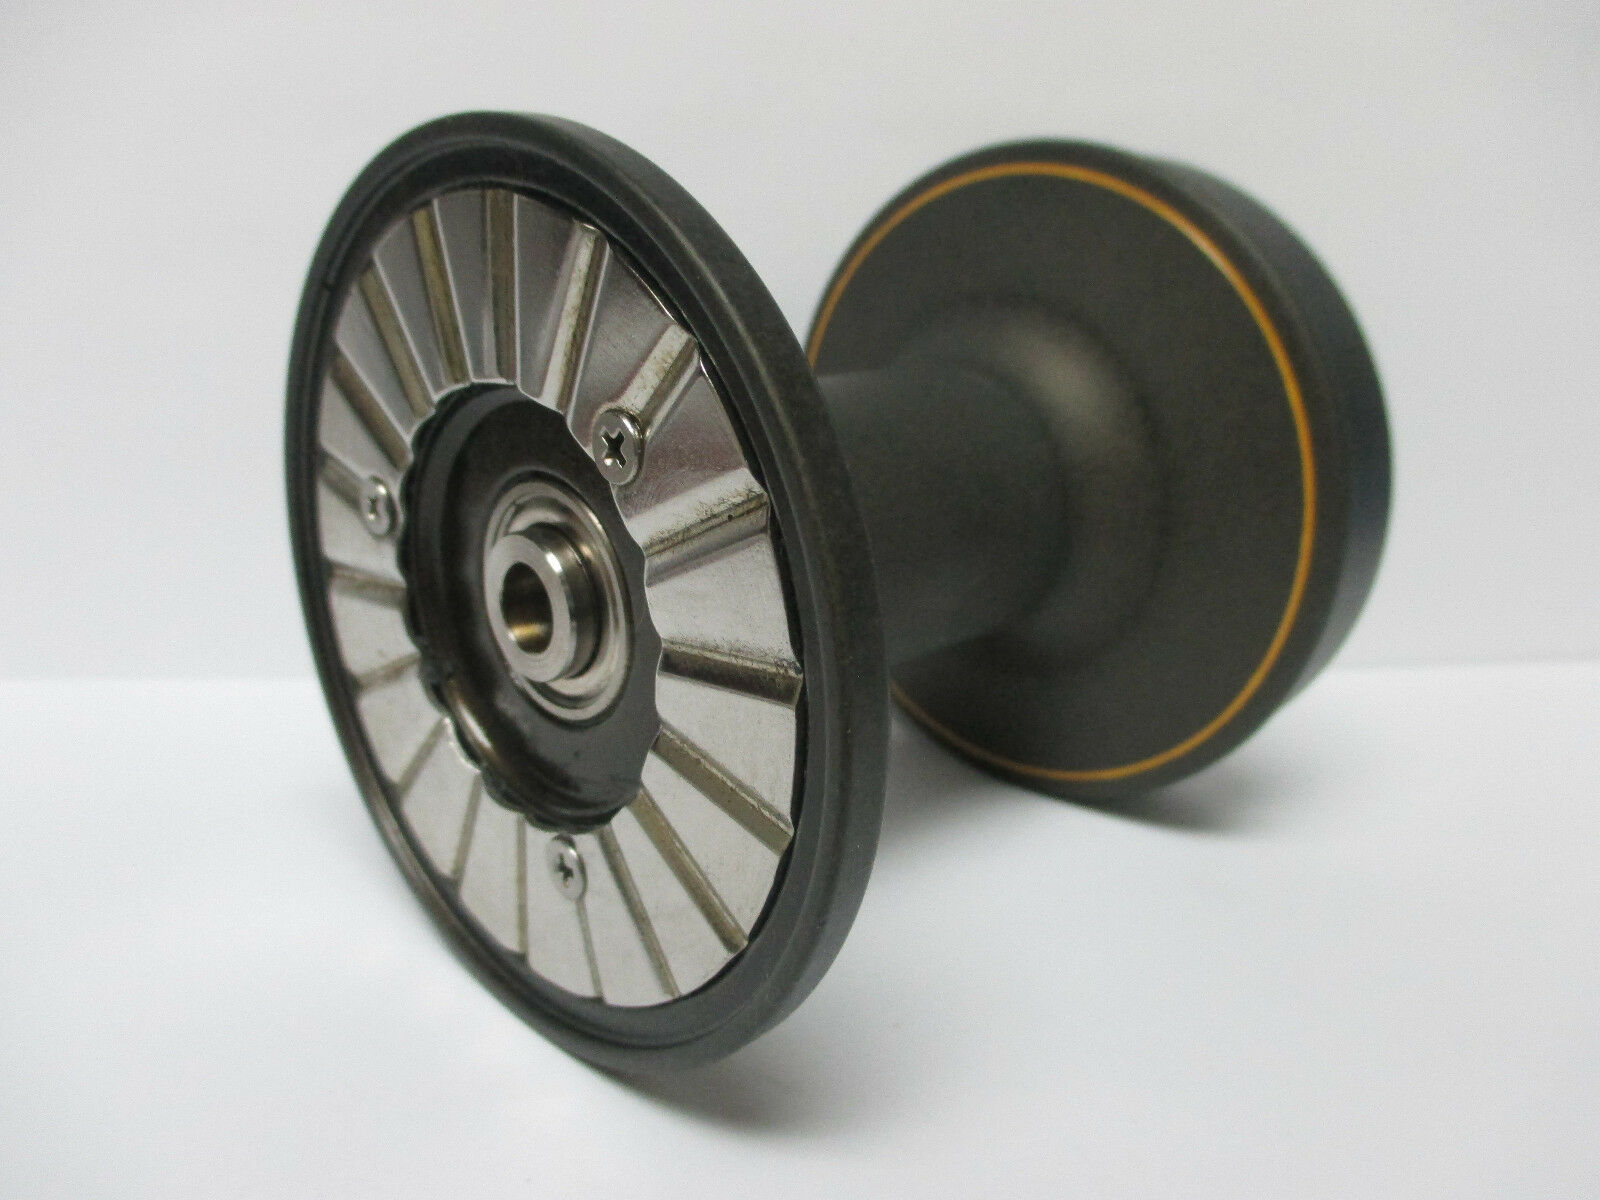 NEW DUEL DUEL DUEL BIG GAME REEL PART - 4/0 Two Speed 4/0 - Spool Assembly b724b6